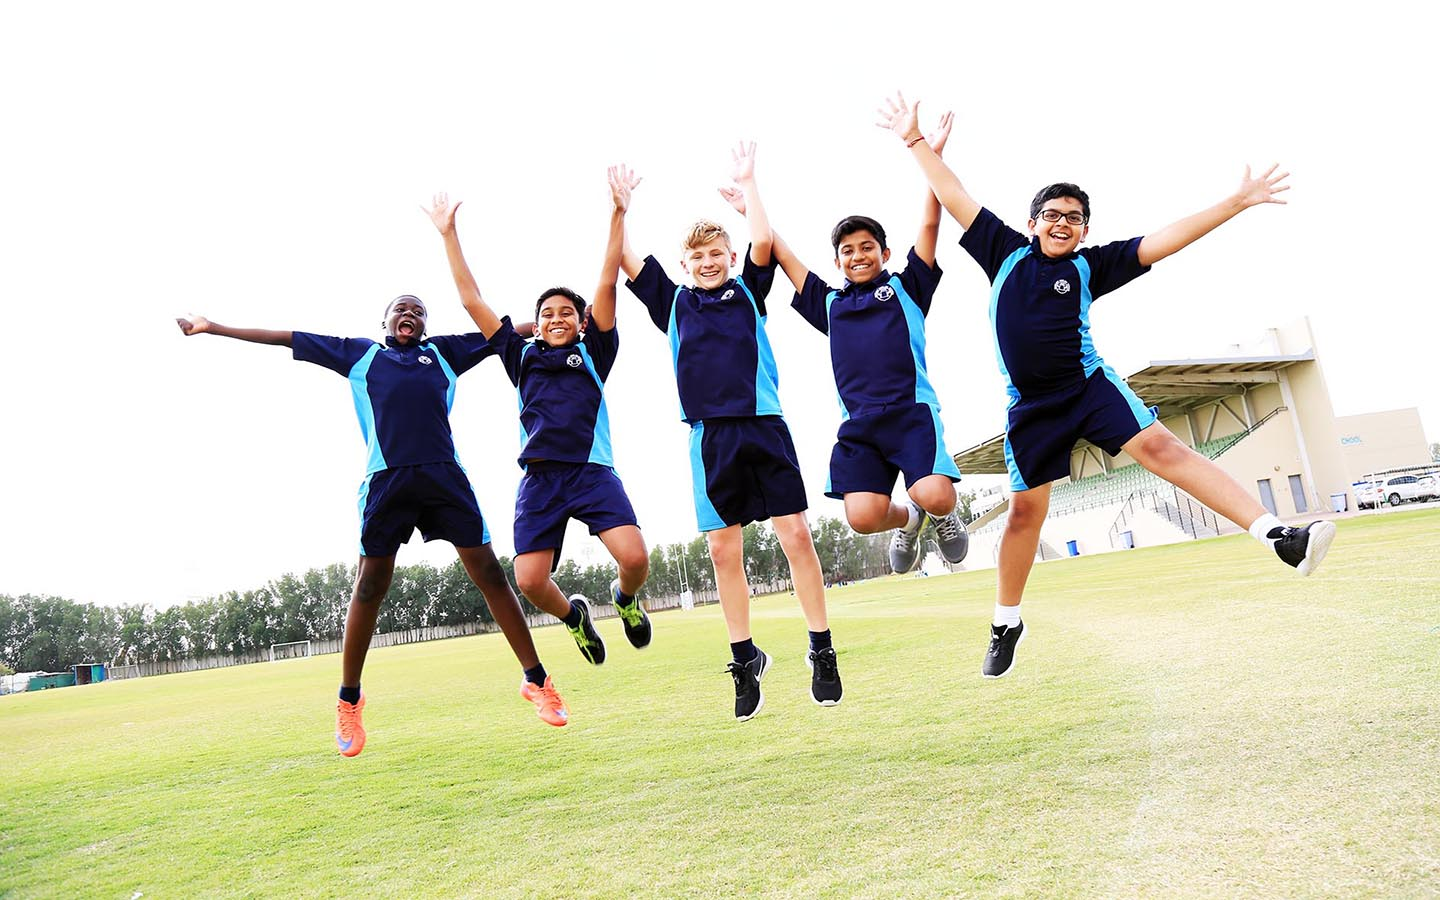 School kids group jumping and posing for photo